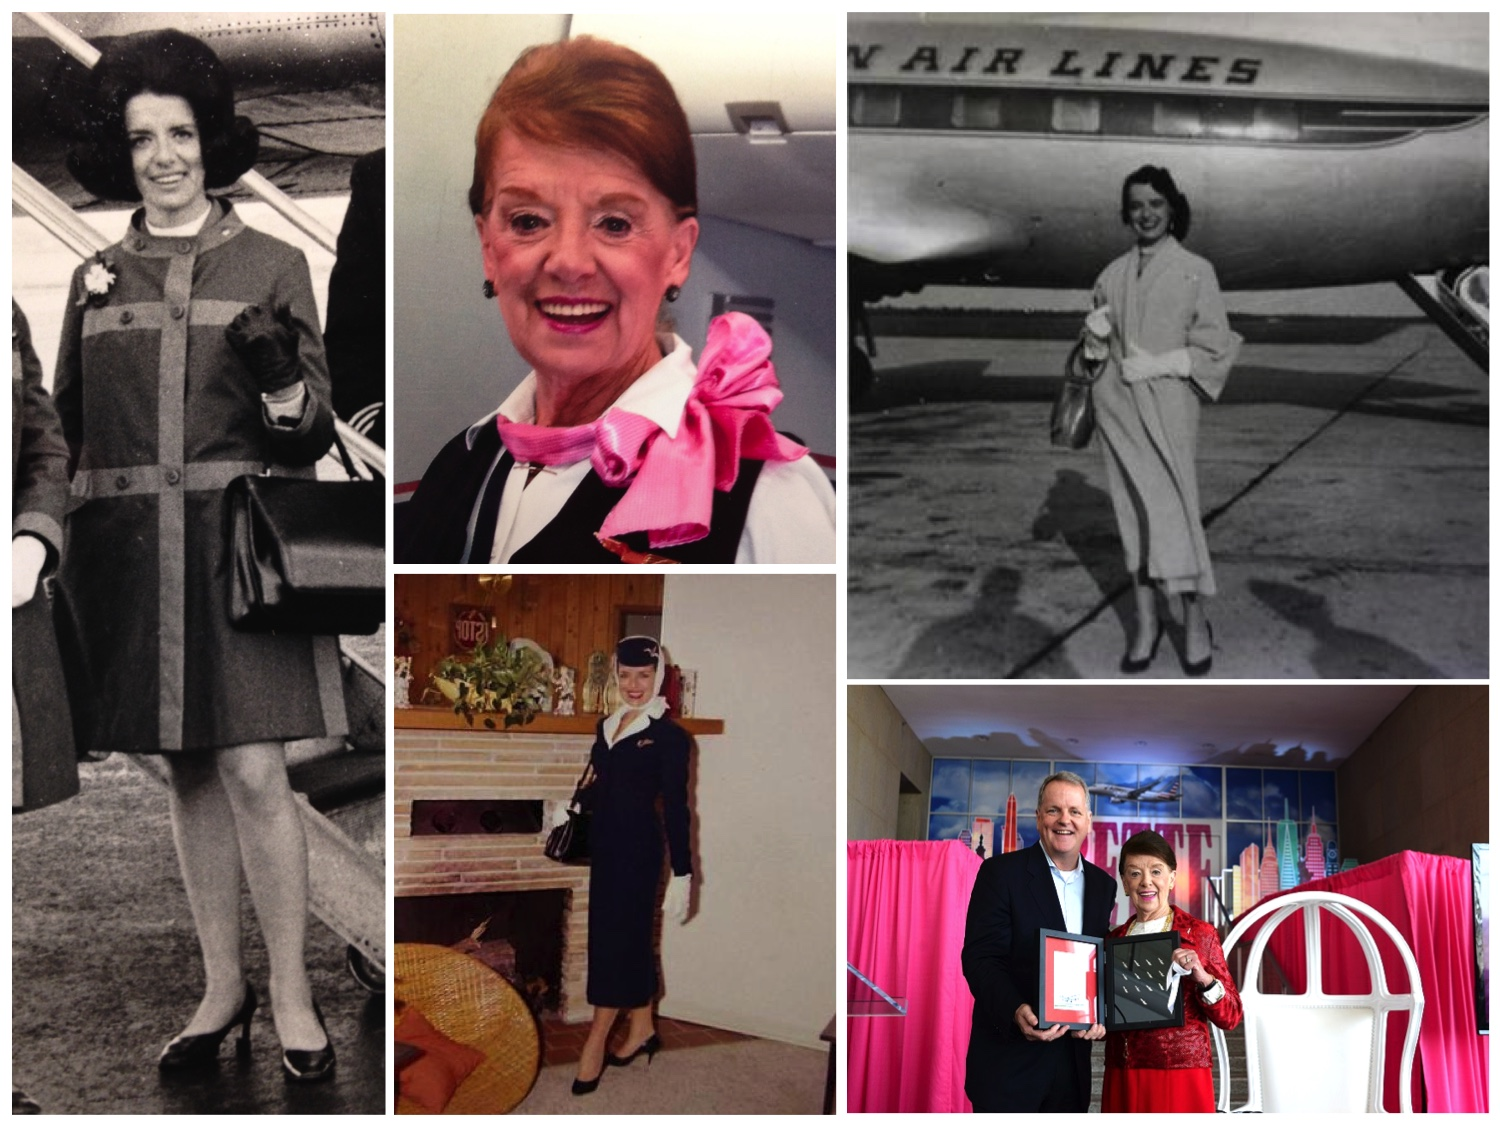 Bette Nash, hôtesse de l'air depuis 60 ans chez American Airlines - Photo AA